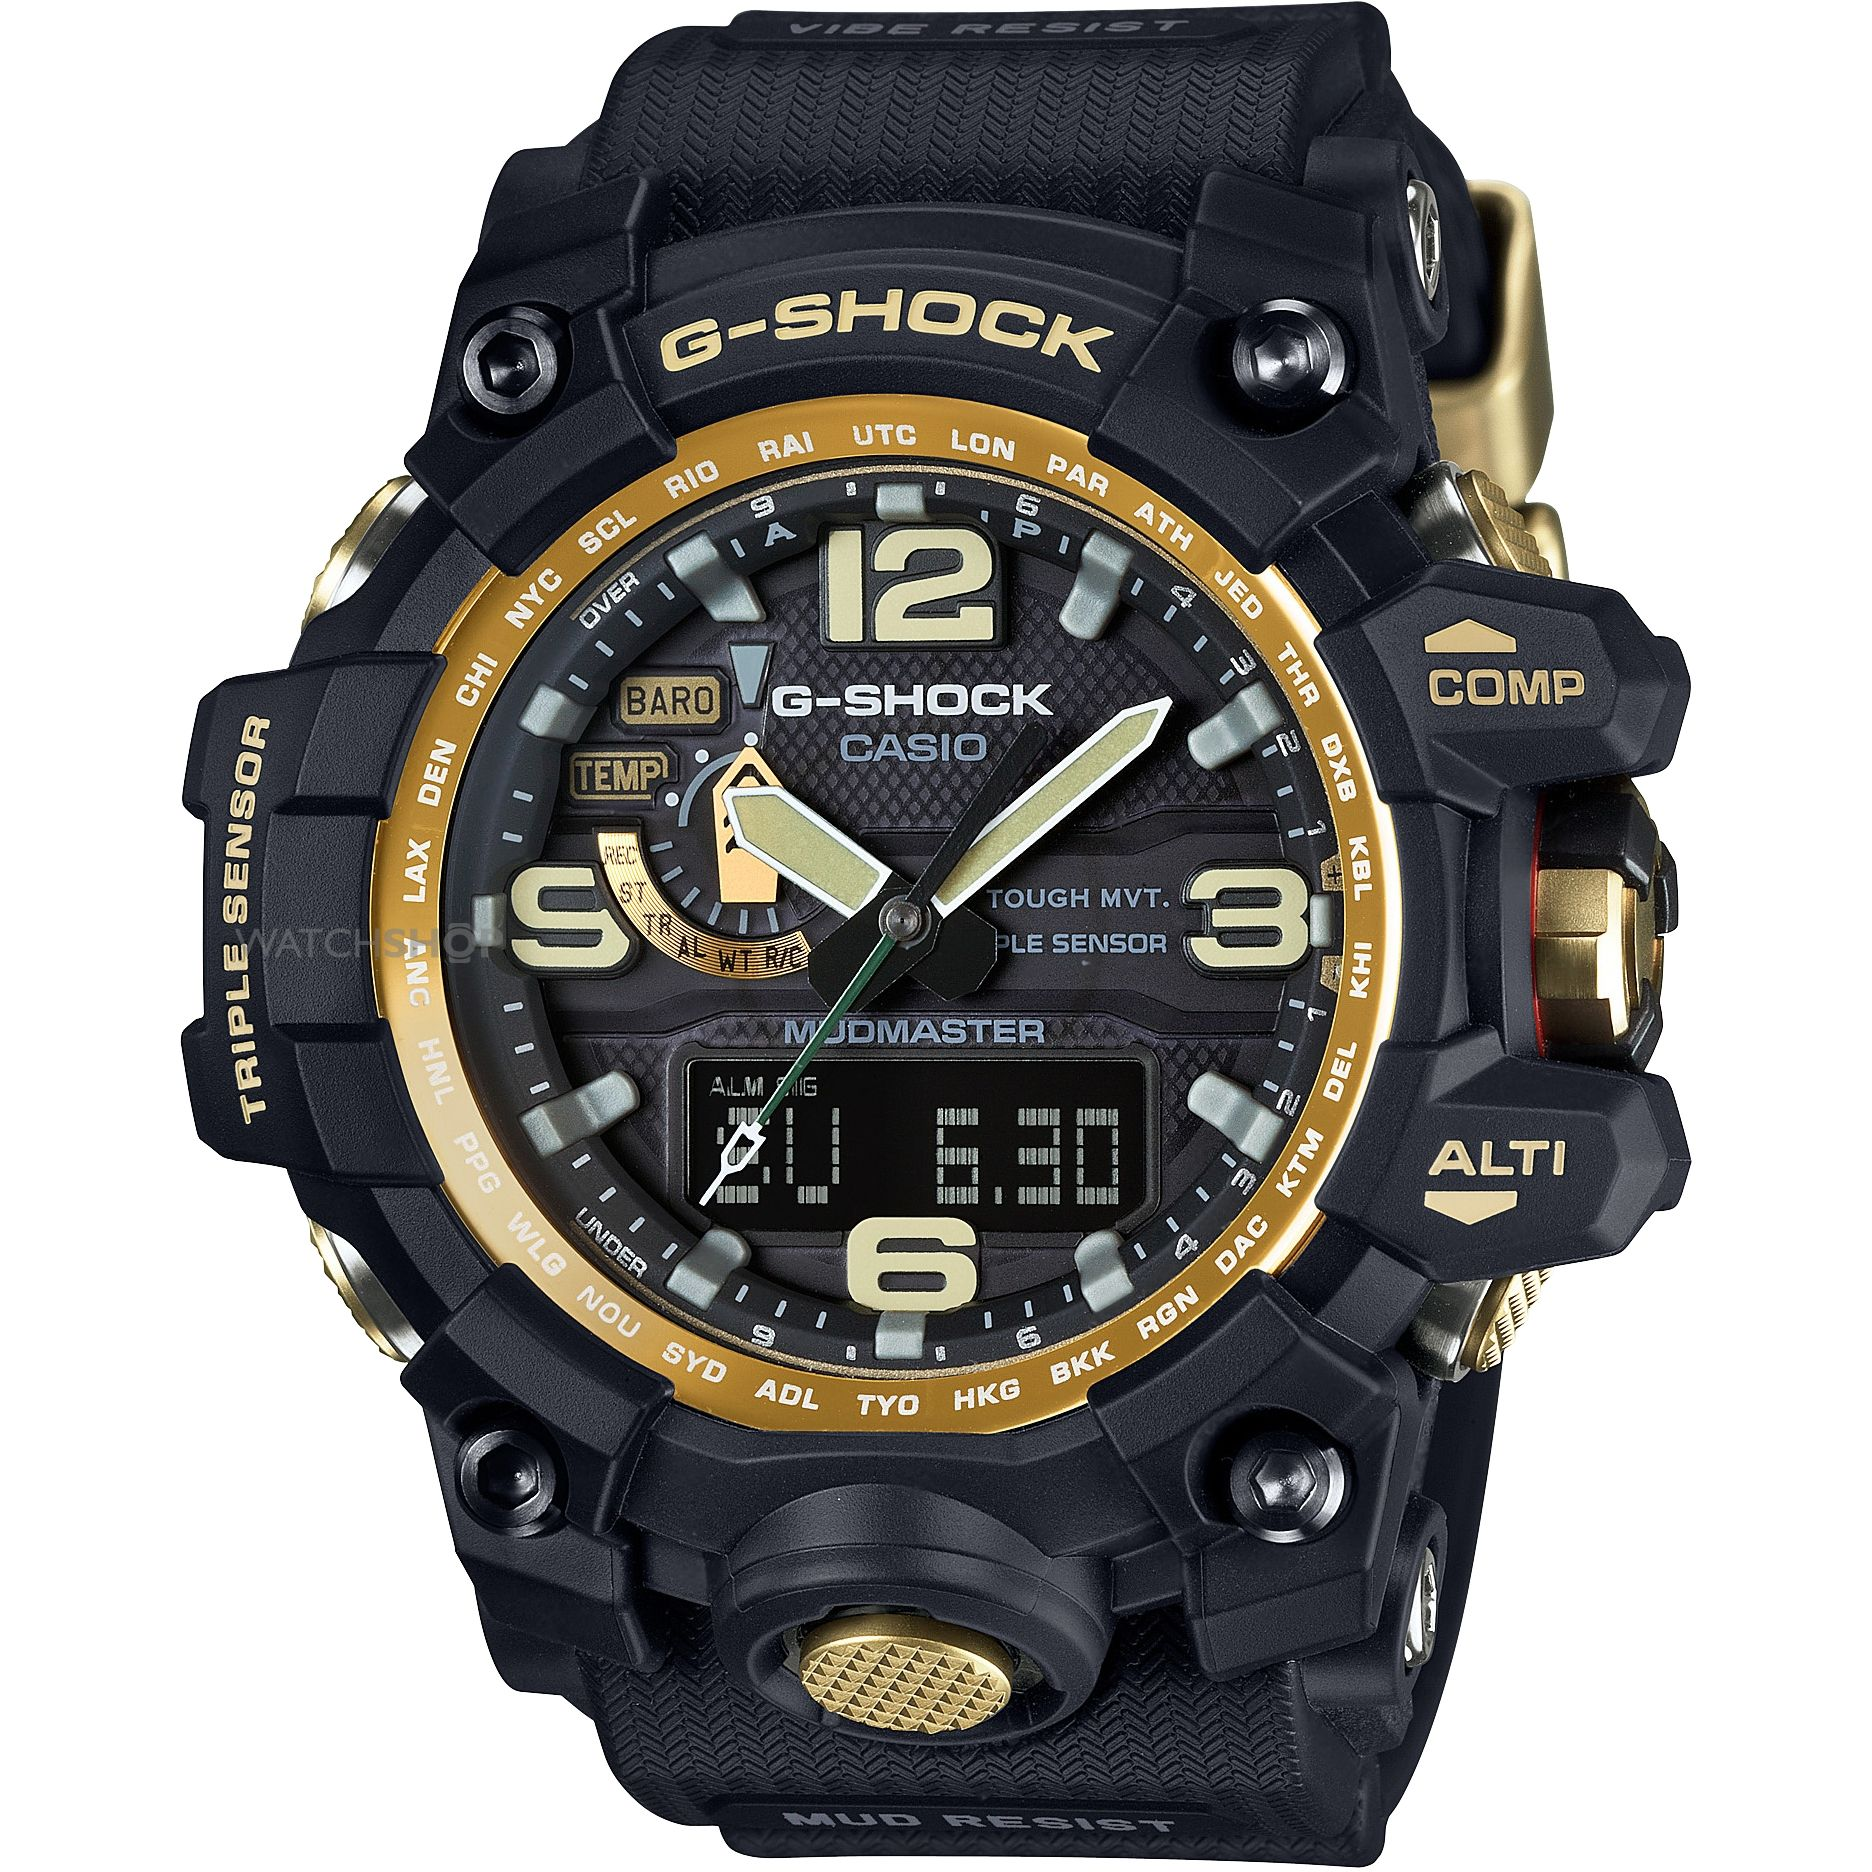 38239d8b8225f Casio G-Shock Image. Write Your Review